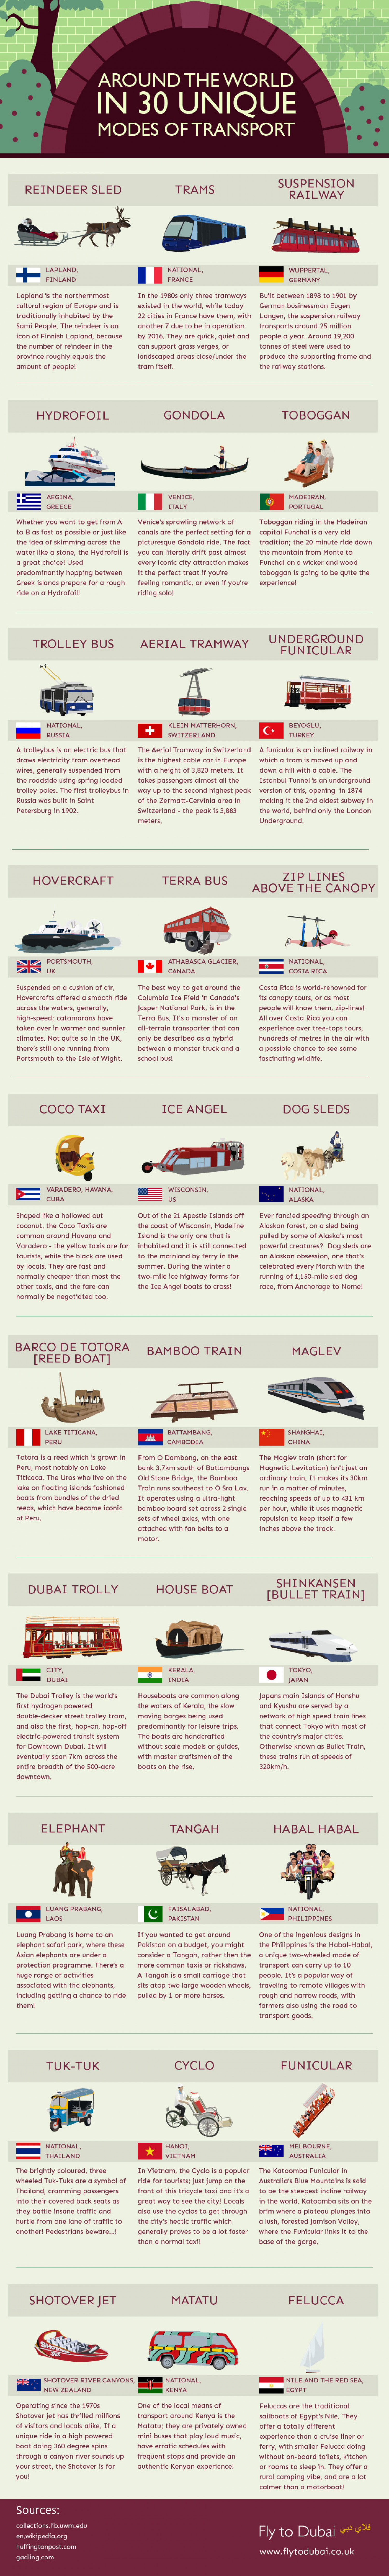 Around The World In 30 Unique Modes of Transport Infographic